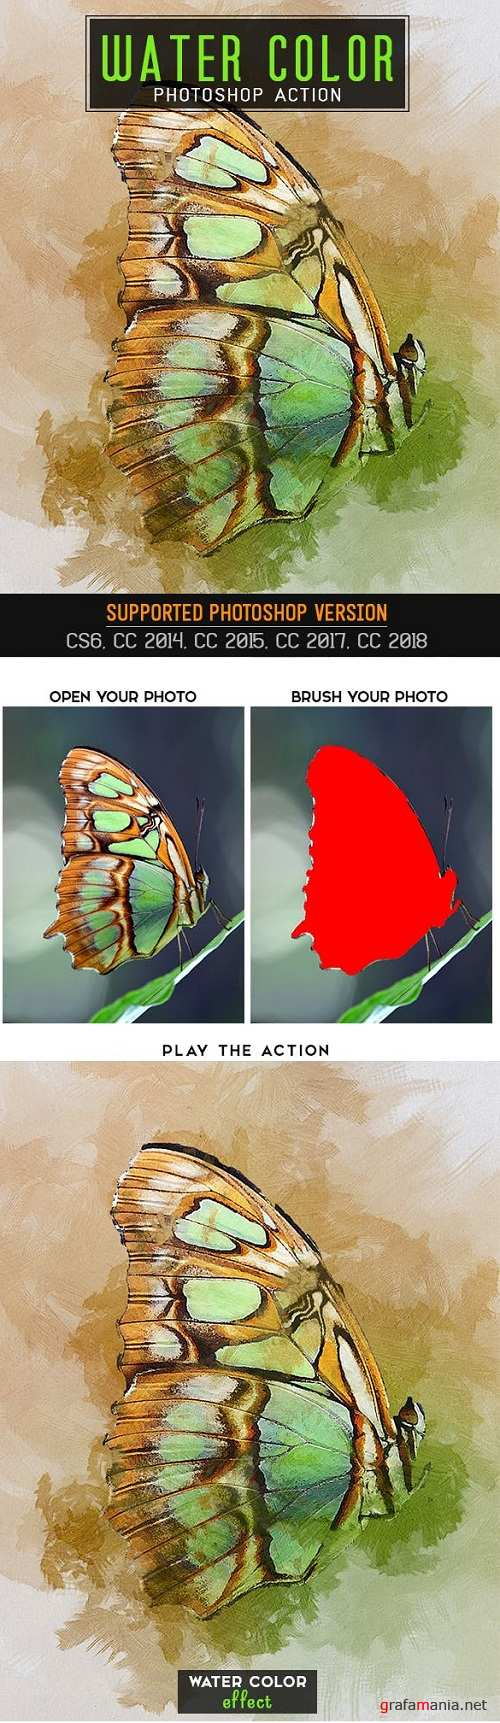 Water Color Photoshop Action 23101869